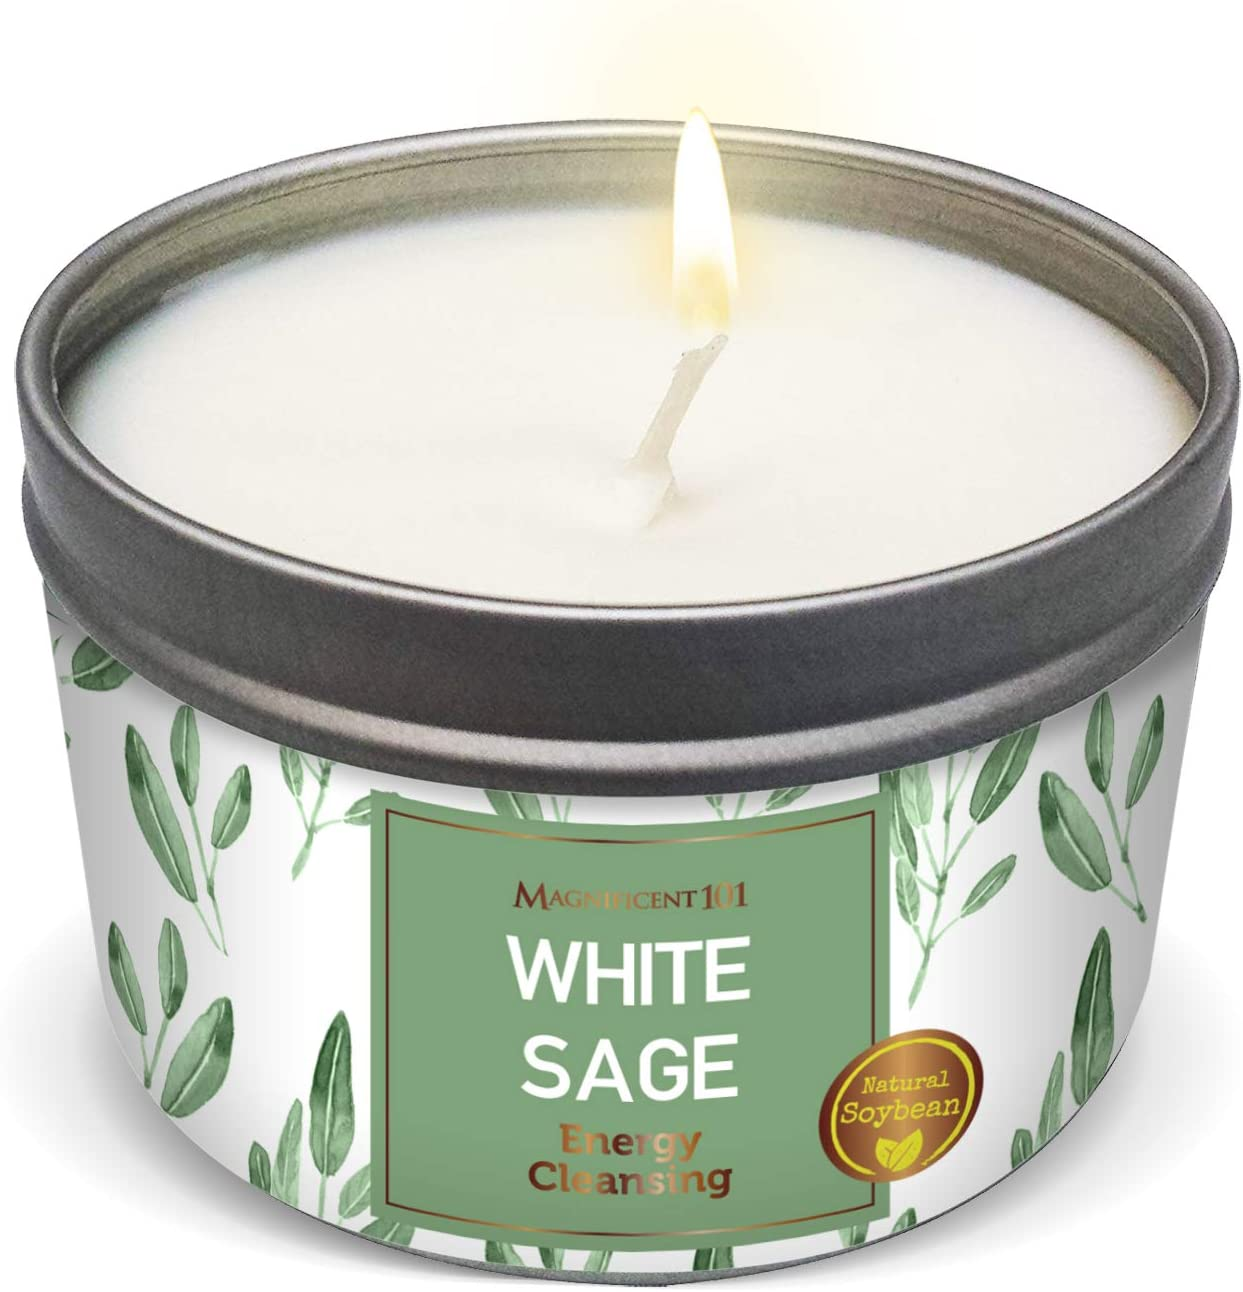 MAGNIFICENT101 New Style Pure White Sage Smudge Candle for House Energy Cleansing, Banishes Negative Energy I Purification and Chakra Healing - Natural Soy Wax Tin Candle (Pure White Sage, 6 oz)